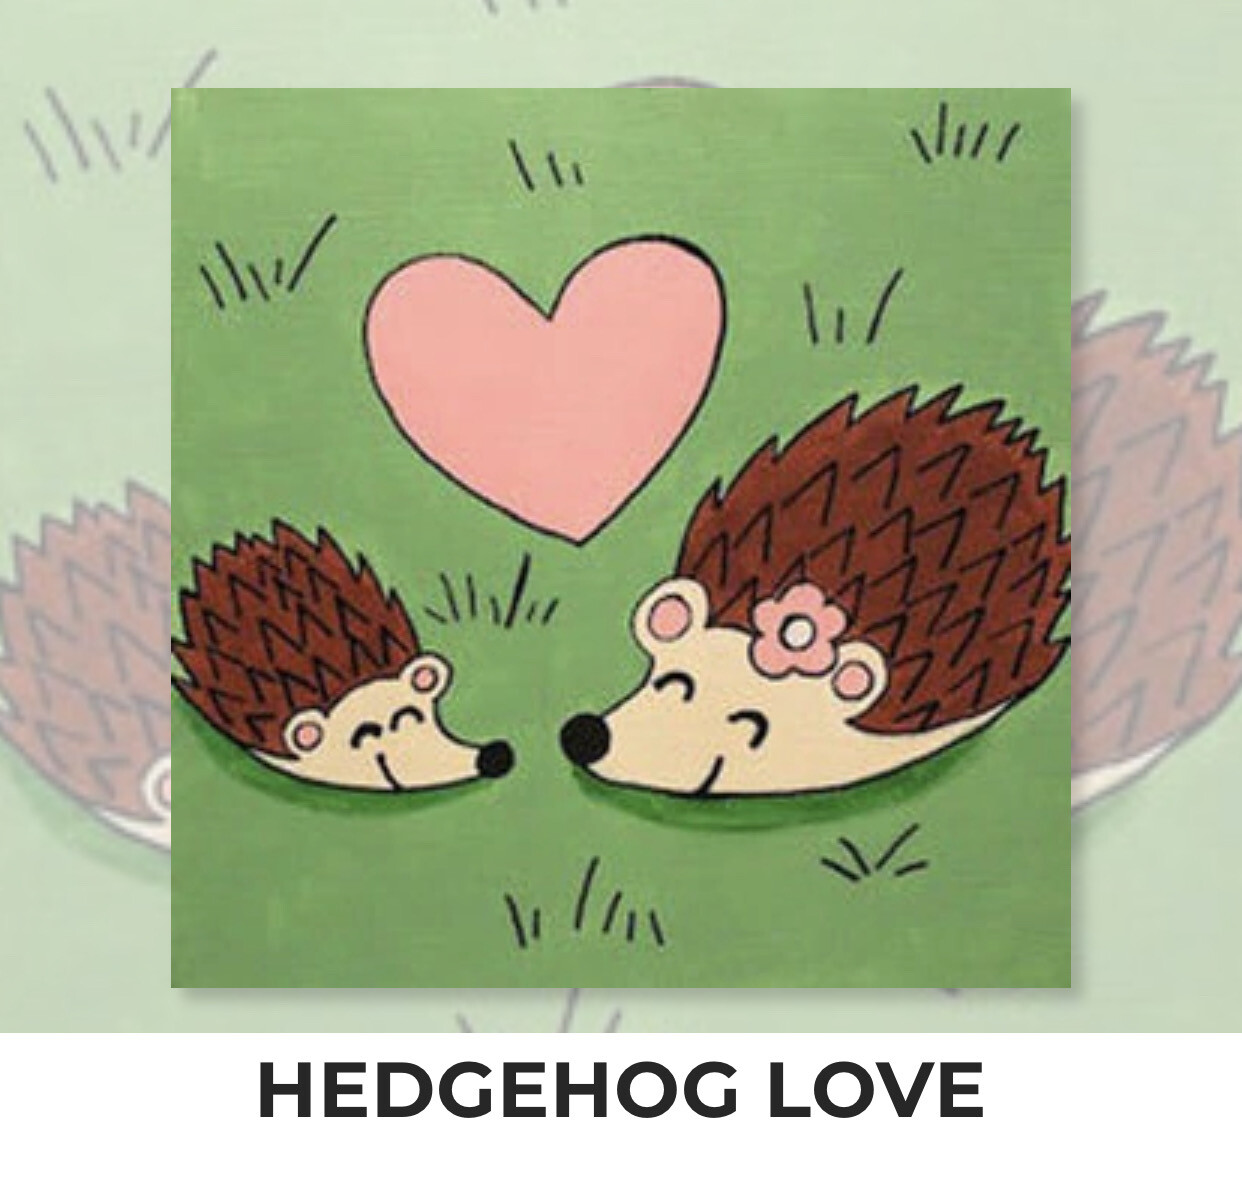 Hedgehog Love KIDS Acrylic Paint On Canvas DIY Art Kit